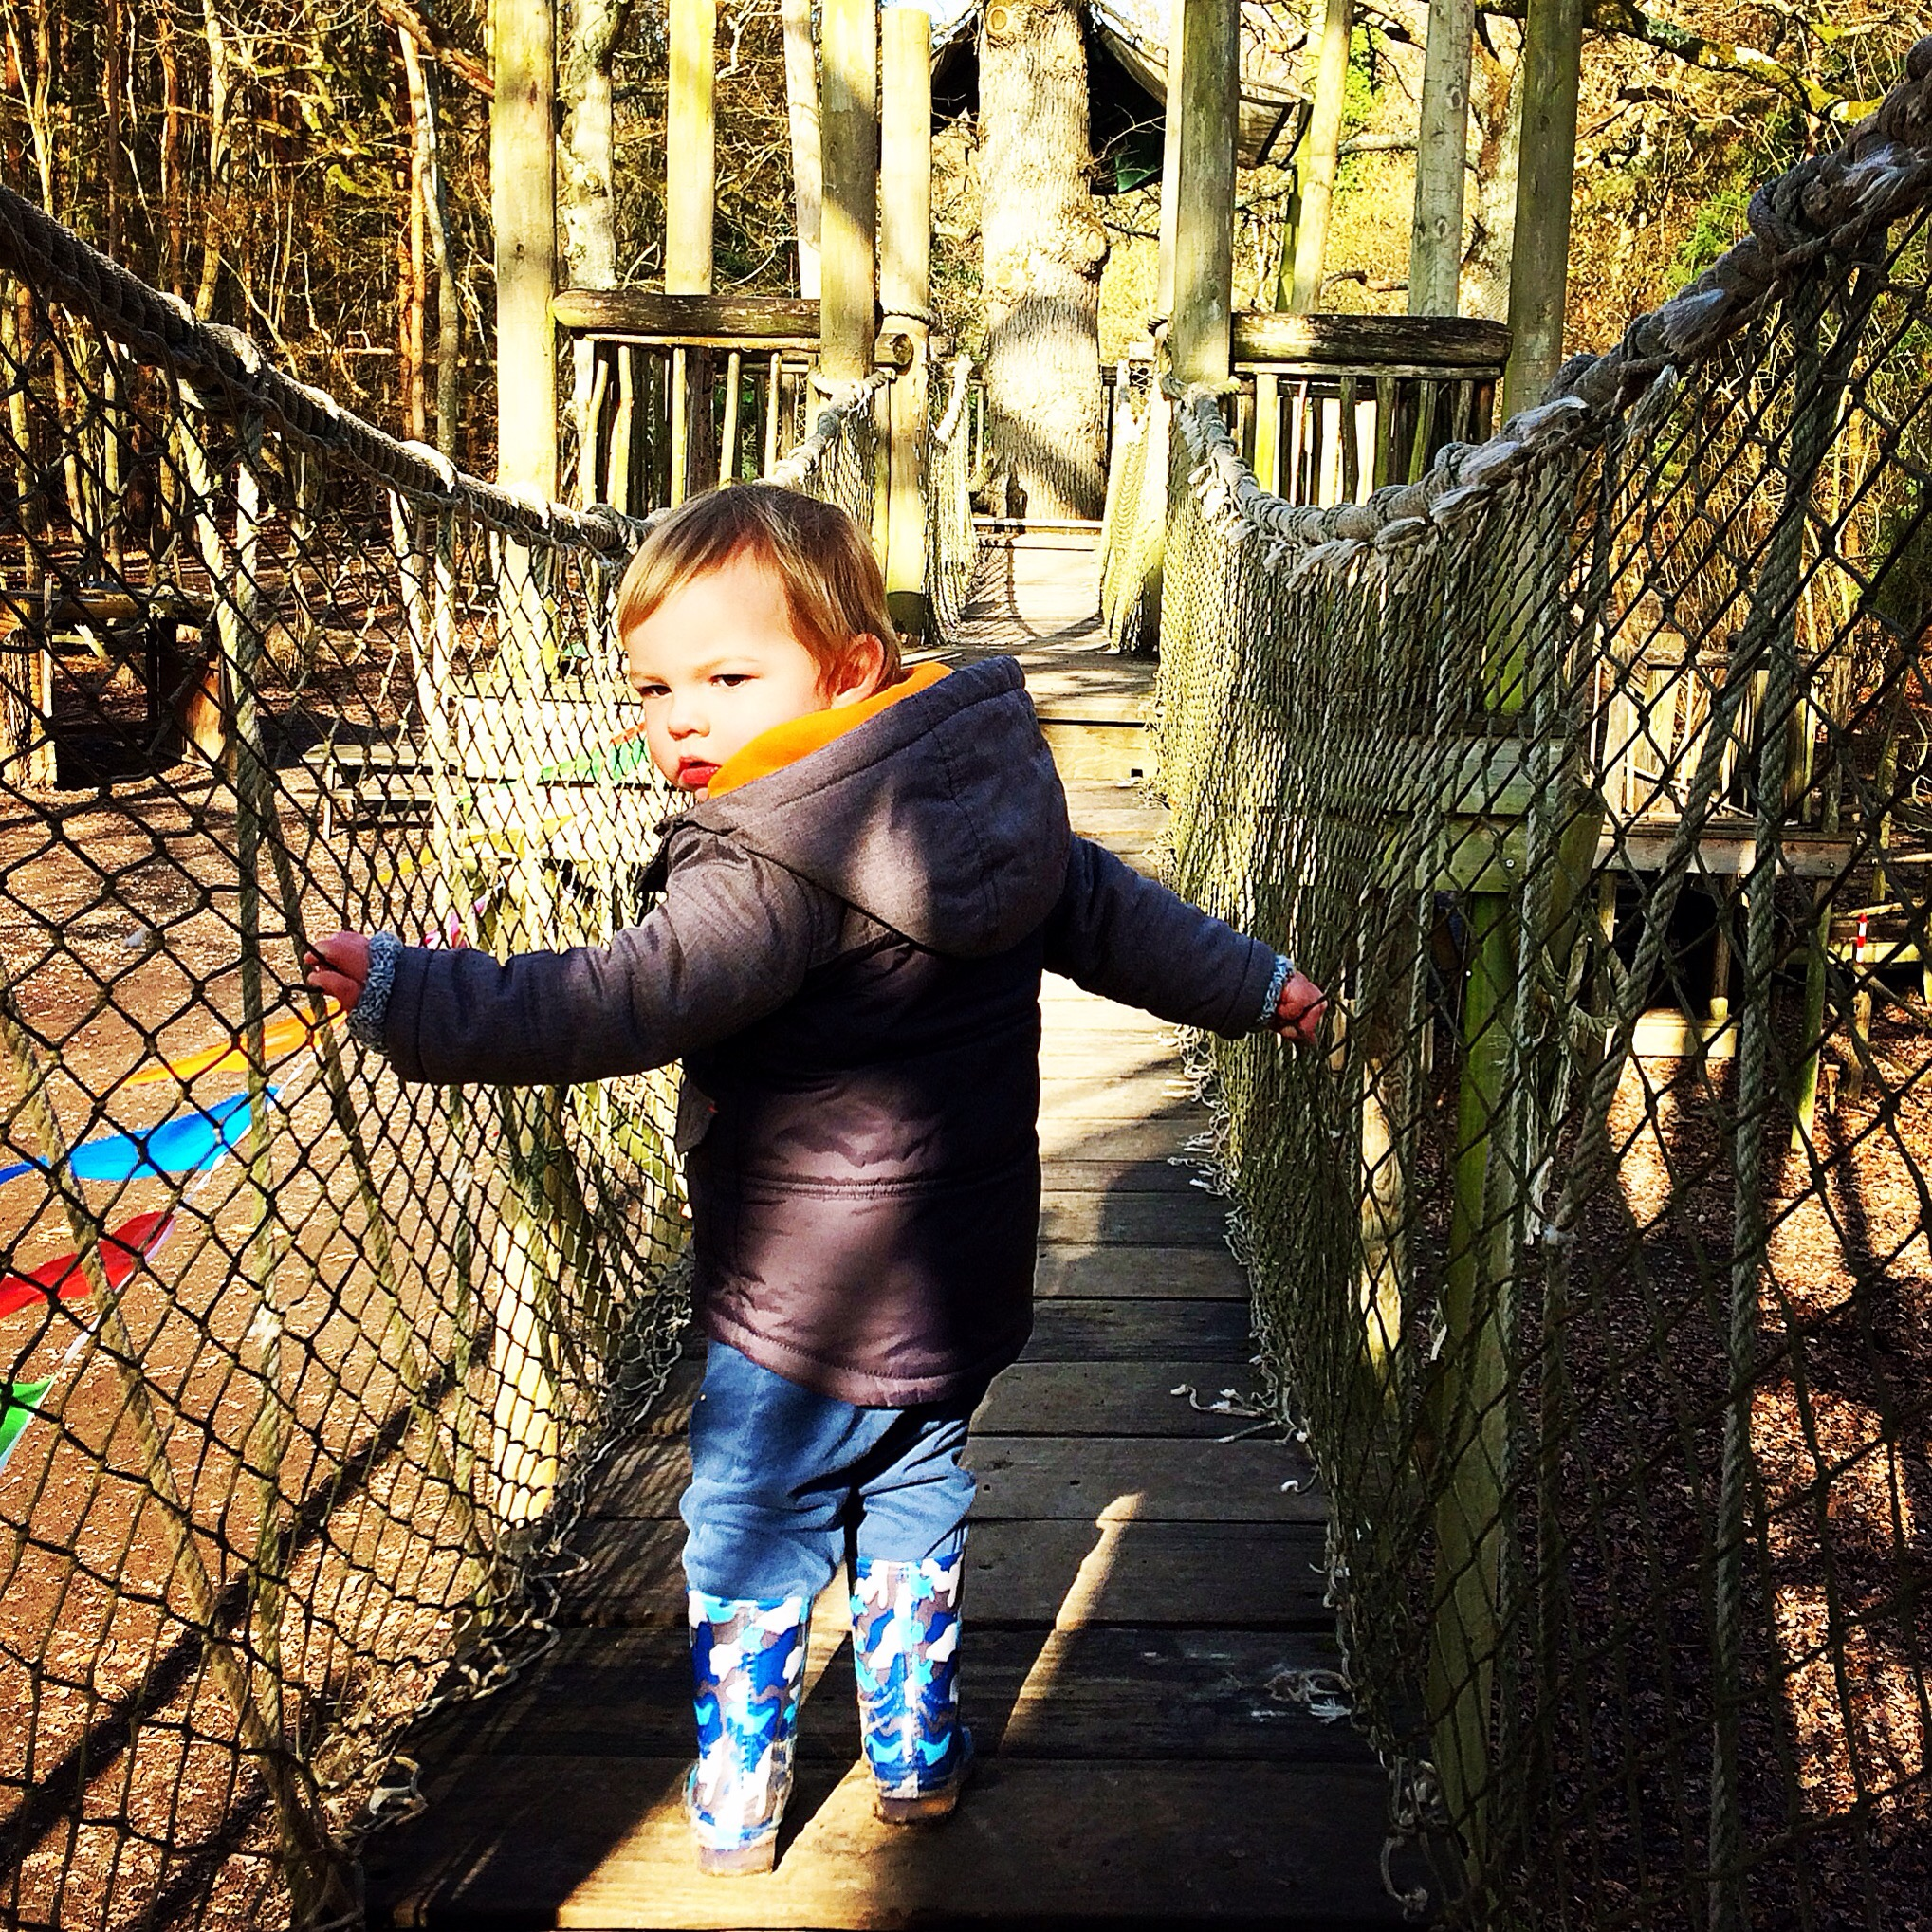 Groombridge Place, Kent, adventure, family, toddler, exploring